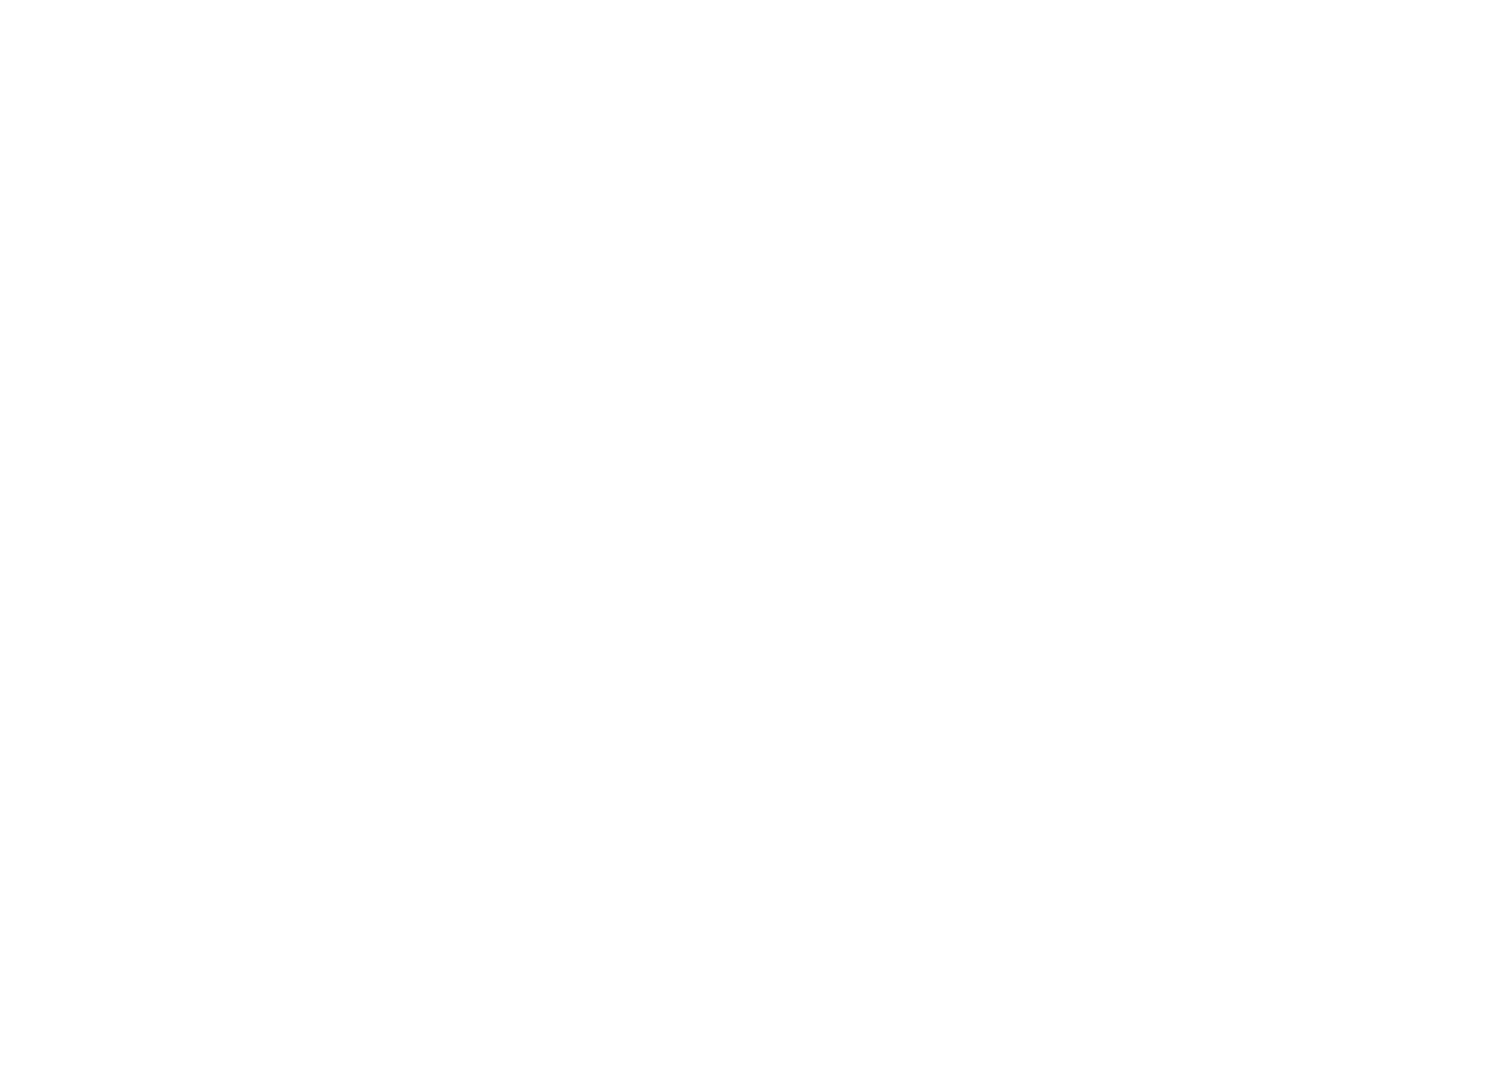 Gravity Pictures